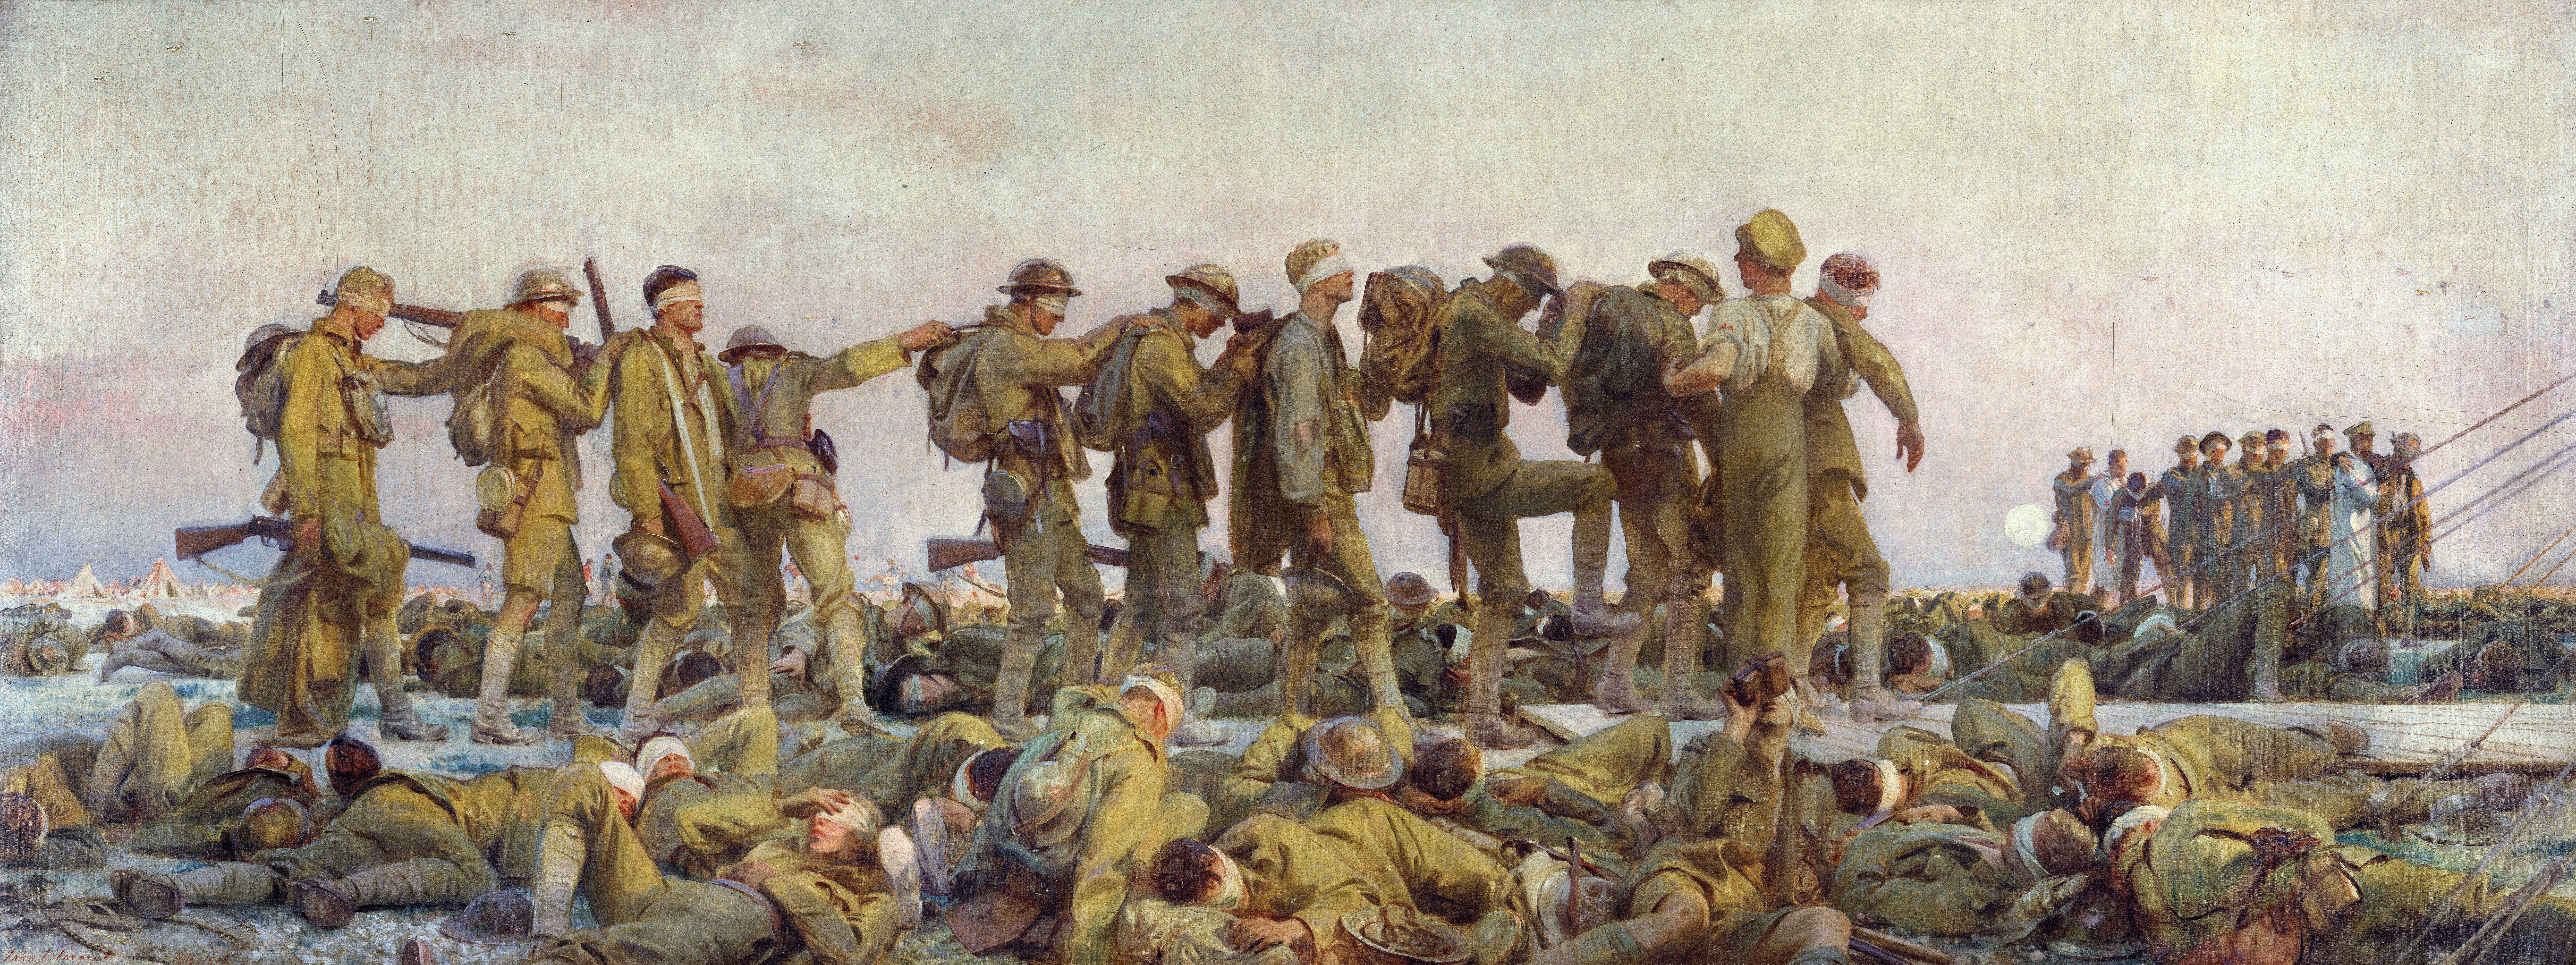 Gassed, by John Singer Sargent